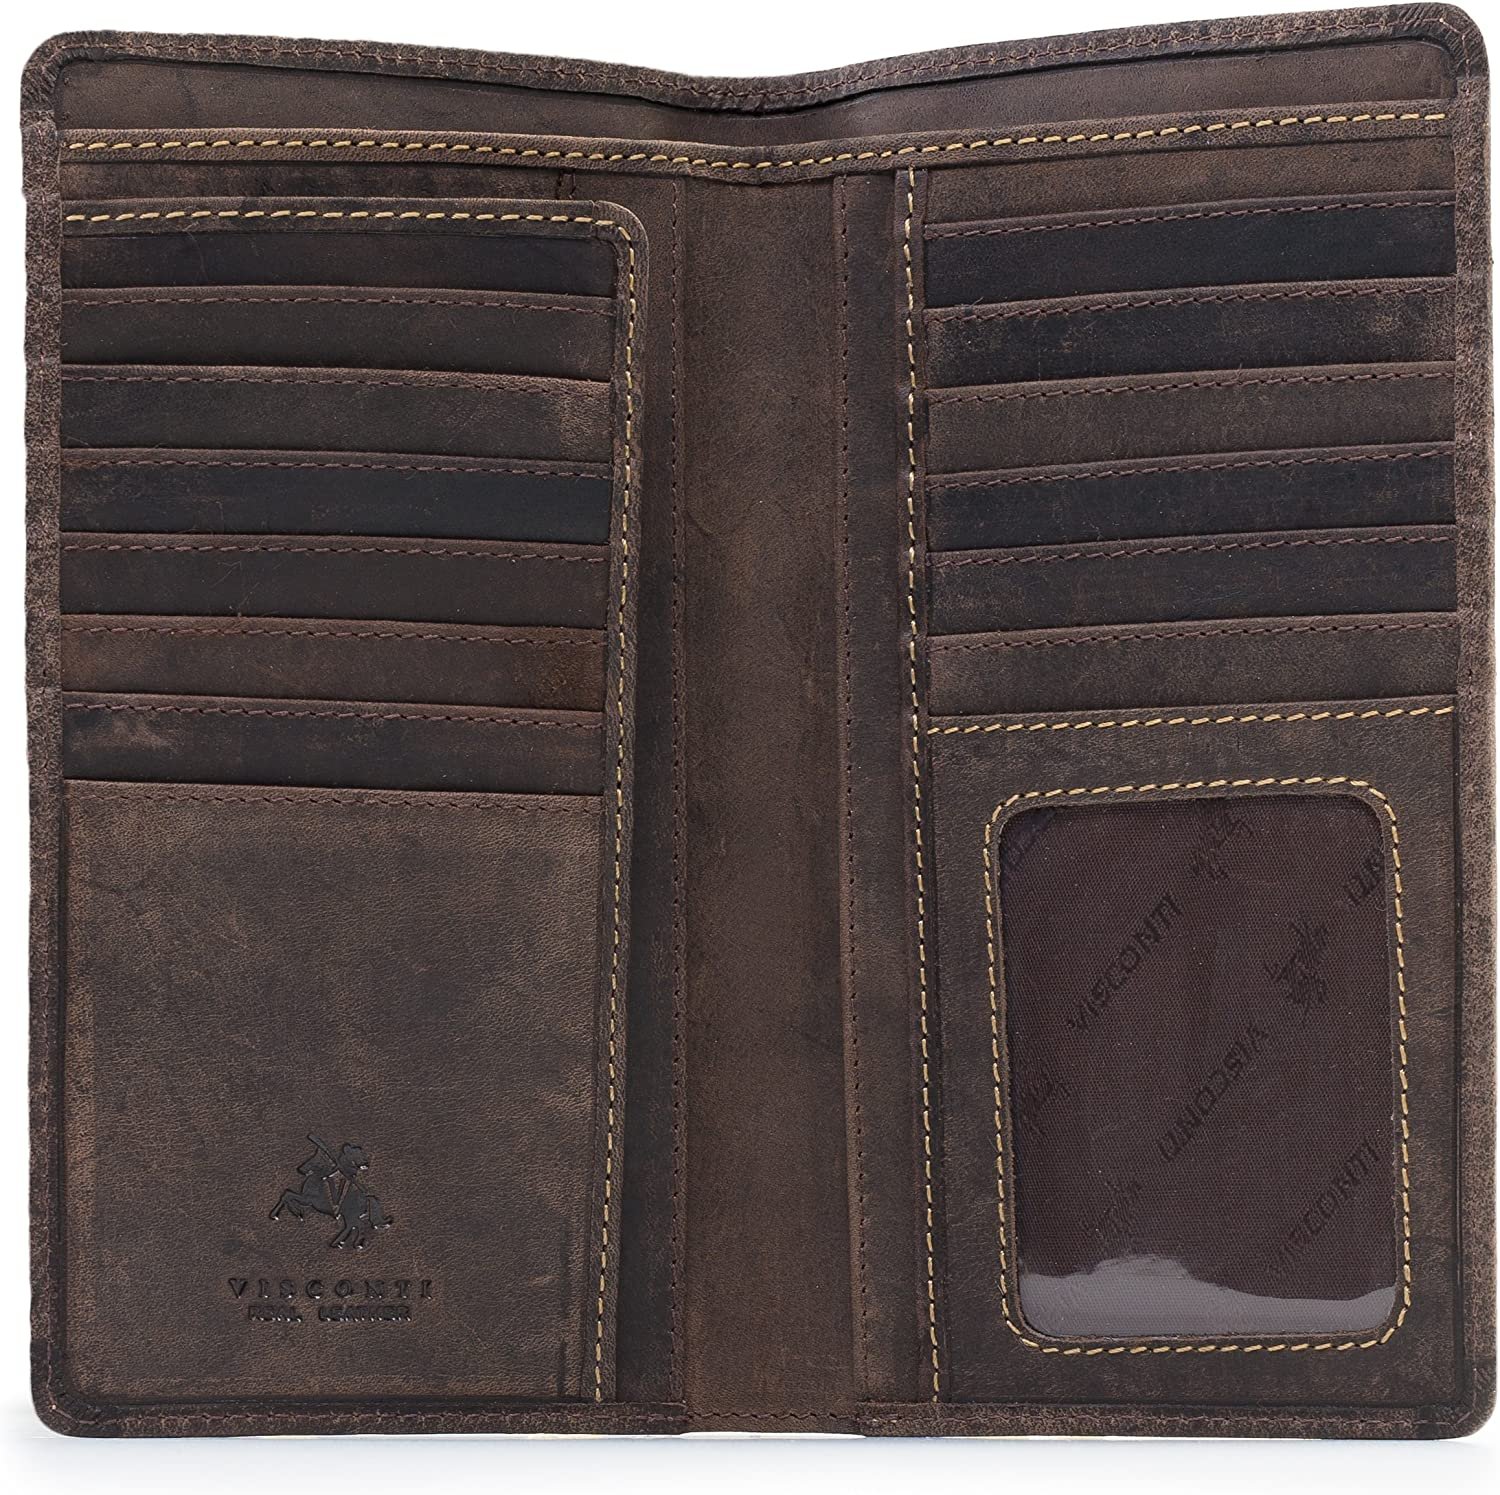 Visconti 724 Hunter Distressed Brown Leather Tall Bi-fold Wallet for Home, Business, or Travel 7